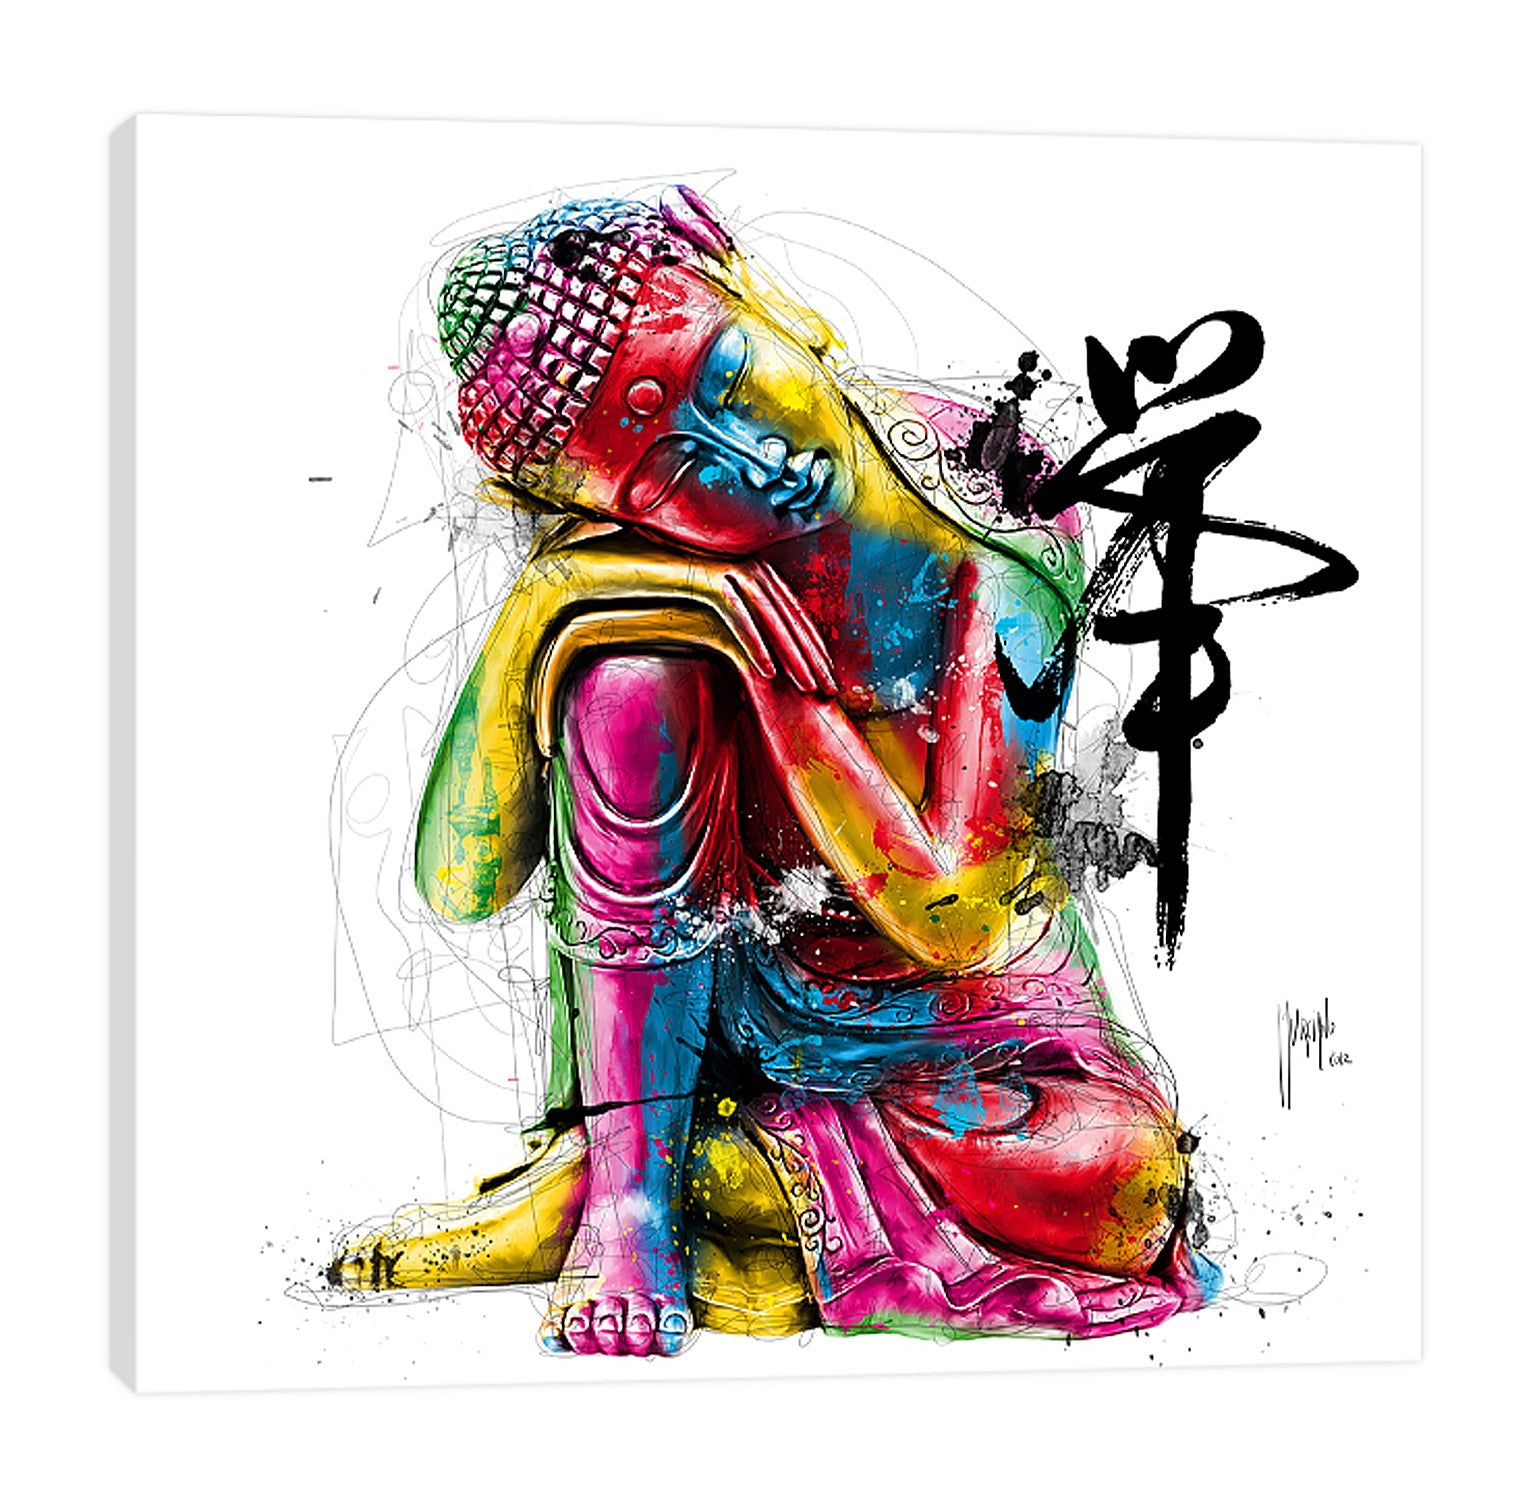 Patrice-Murciano,Modern & Contemporary,People,buddha,people,ombre,splatter,lines,figure,Red,Purple,Mist Gray,Tan Orange,Gray